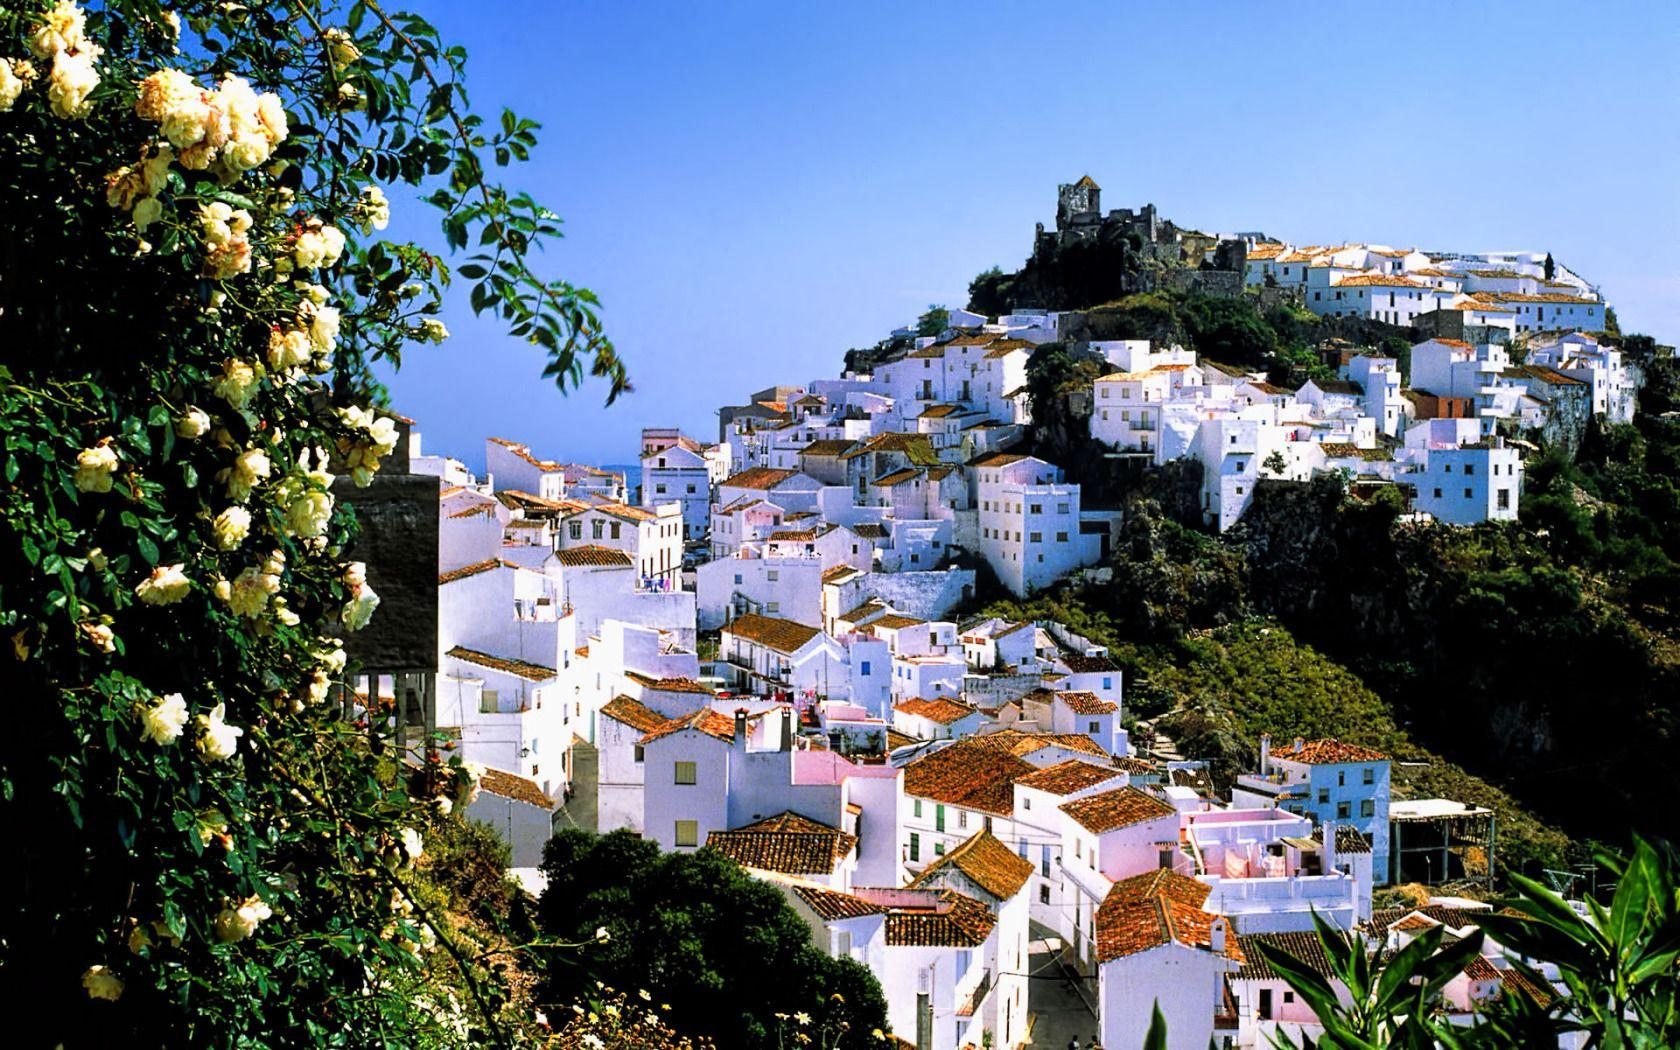 White Village of Casares, Malaga Province, Andalucia, Southern Spain